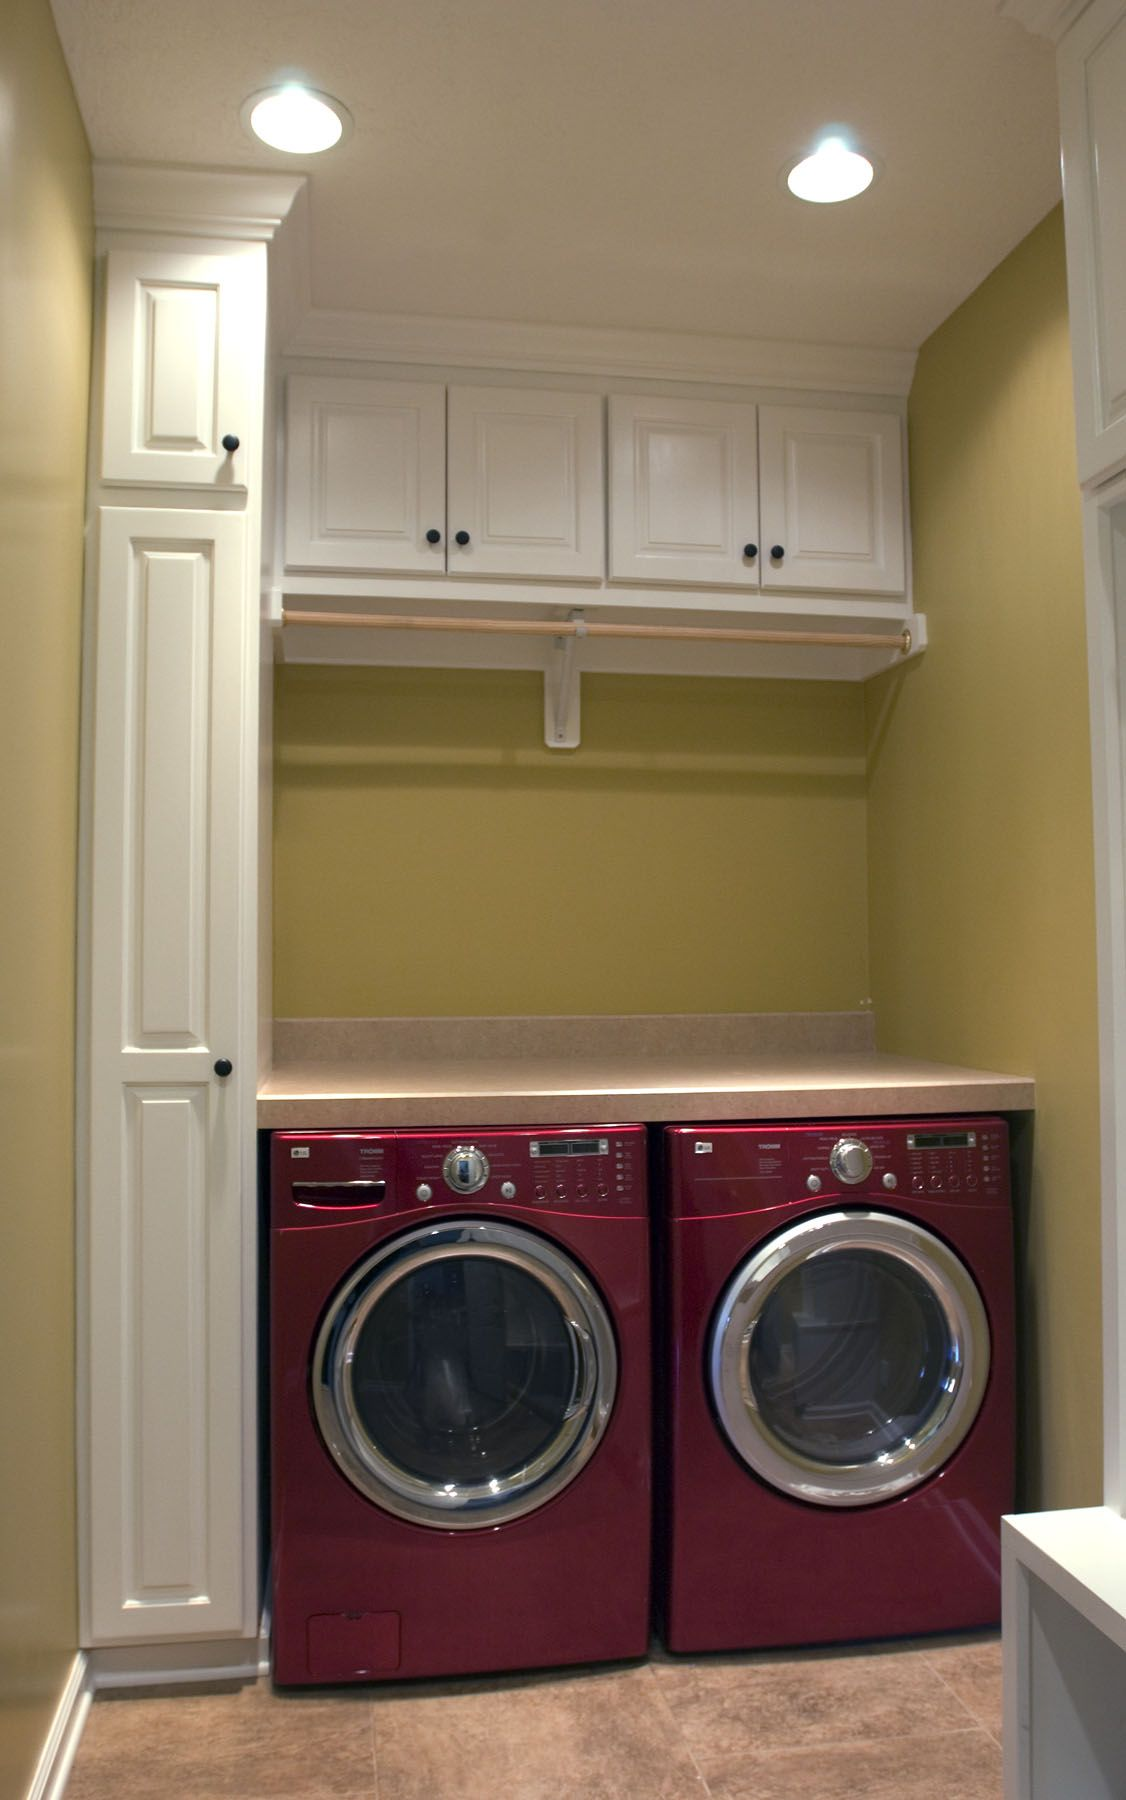 25+ laundry room cabinets ideas and design decorating minimalist